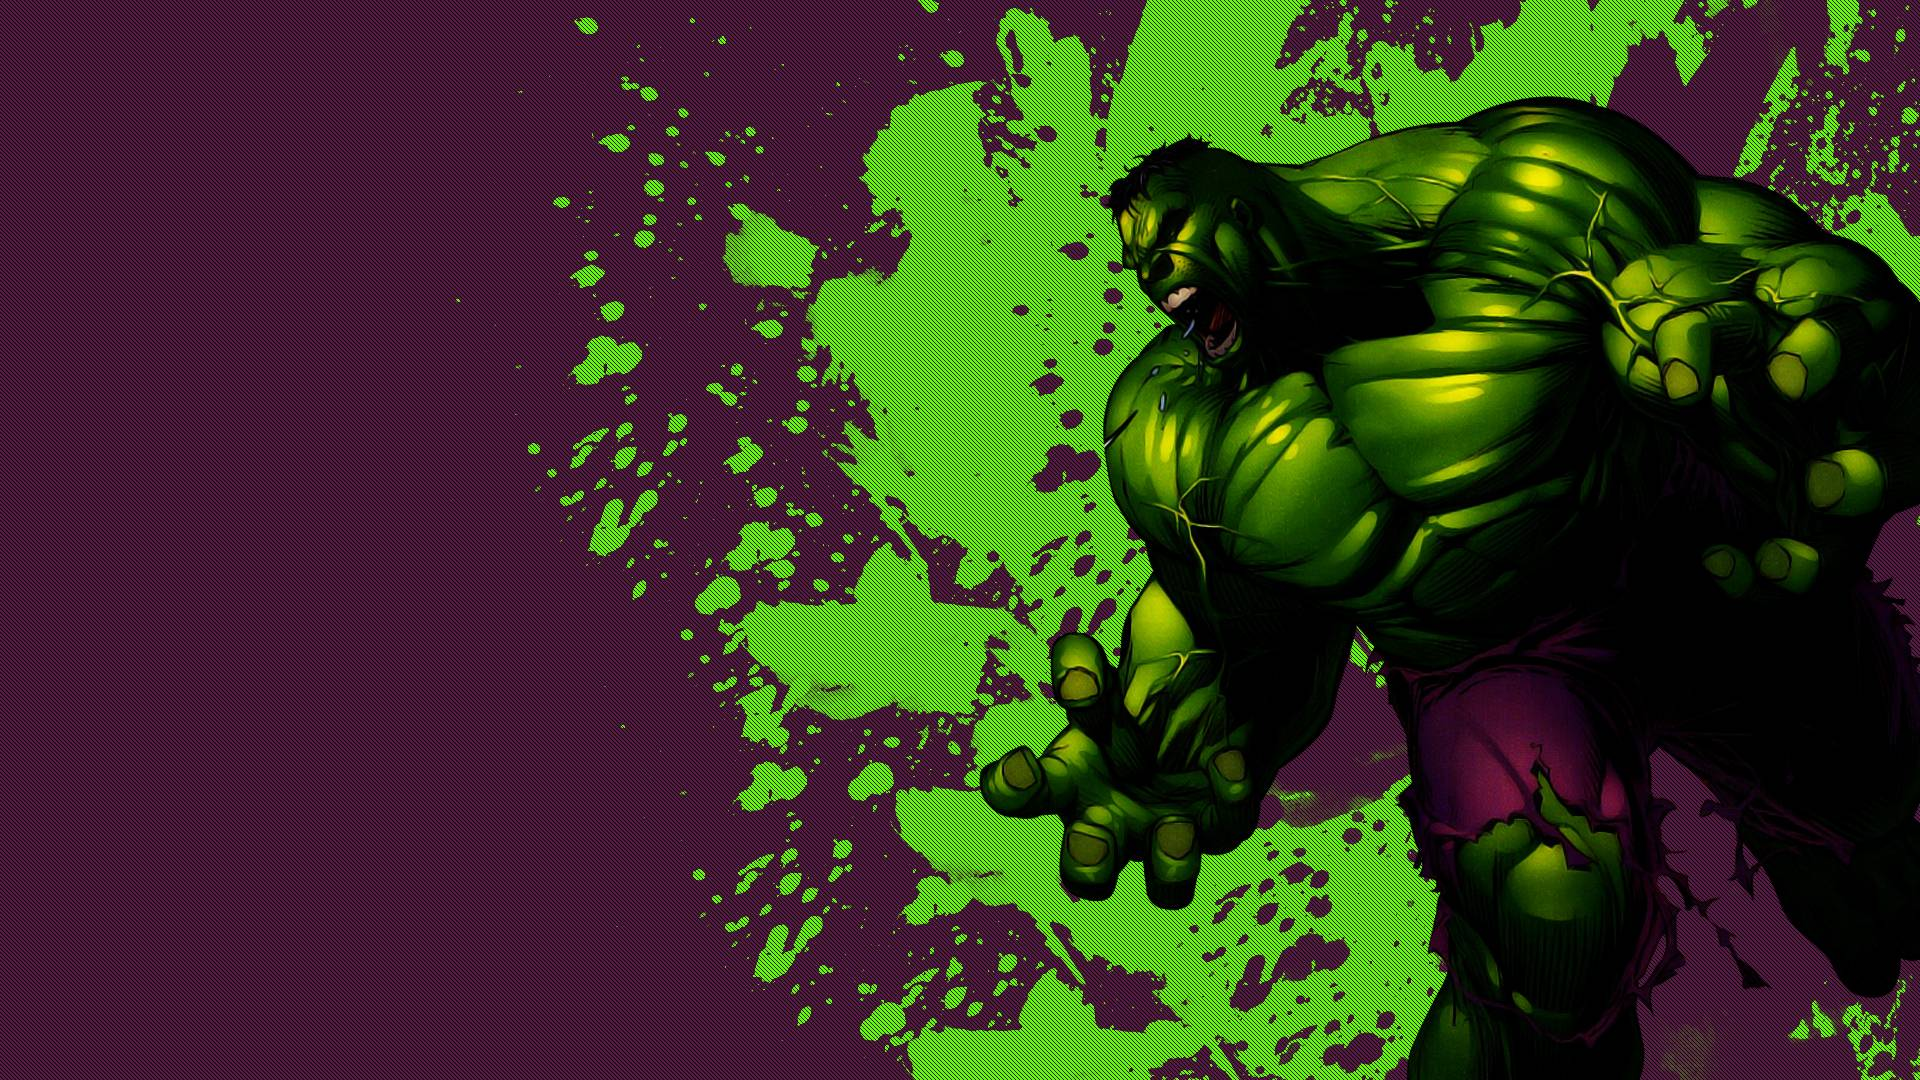 Hulk Wallpaper 2 259113 Images HD Wallpapers| Wallfoy.com (Latviešu)